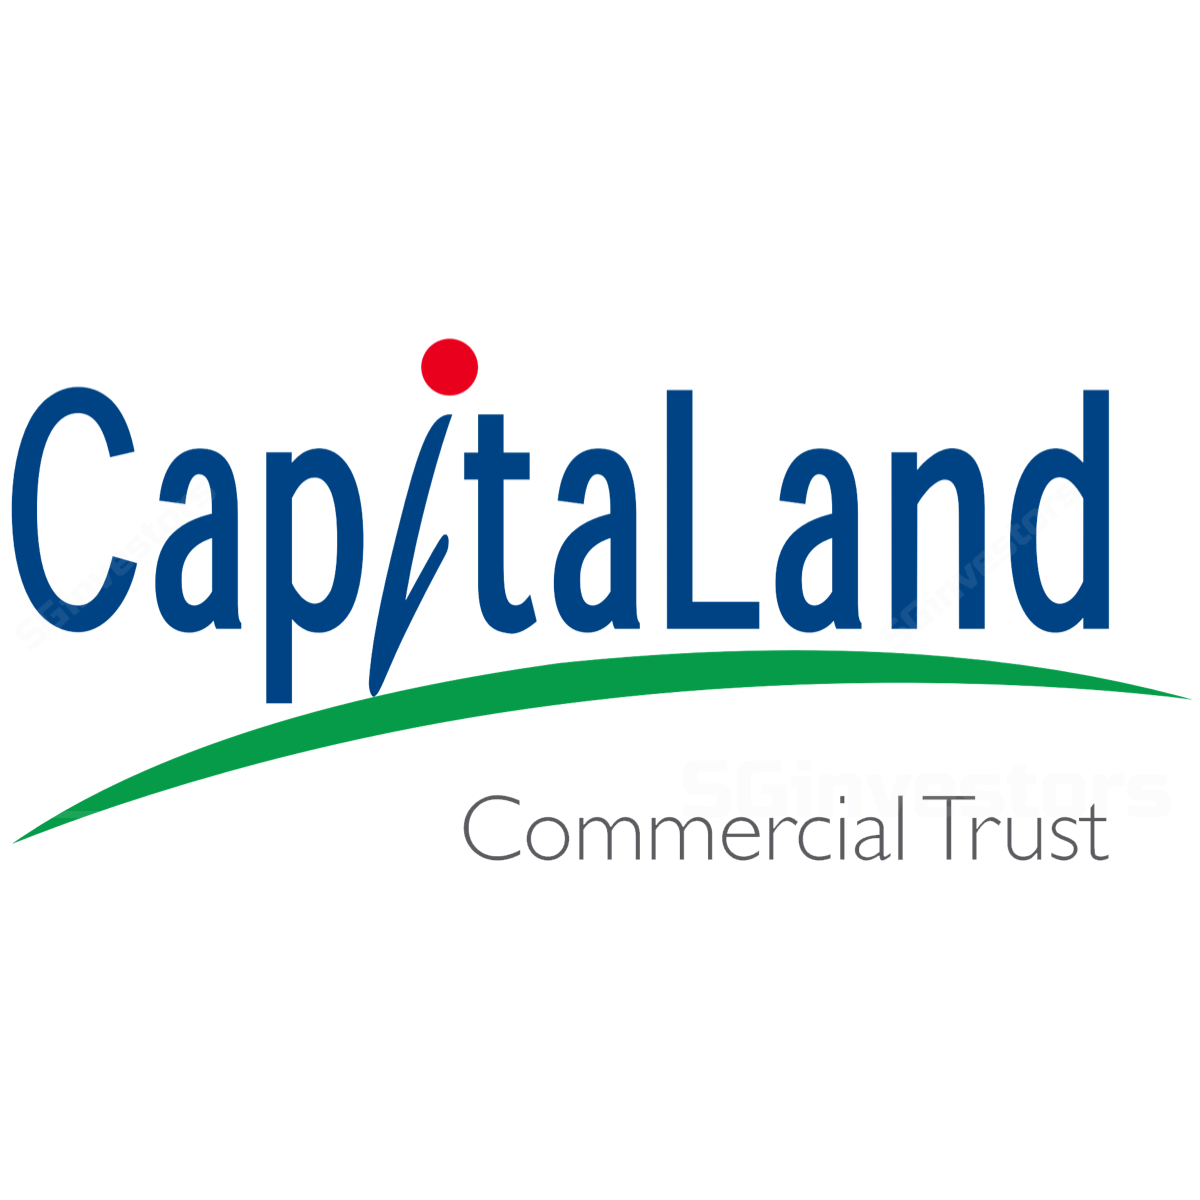 CapitaLand Commercial Trust - RHB Invest 2017-07-13: GSCP Redevelopment Gets The Green Light